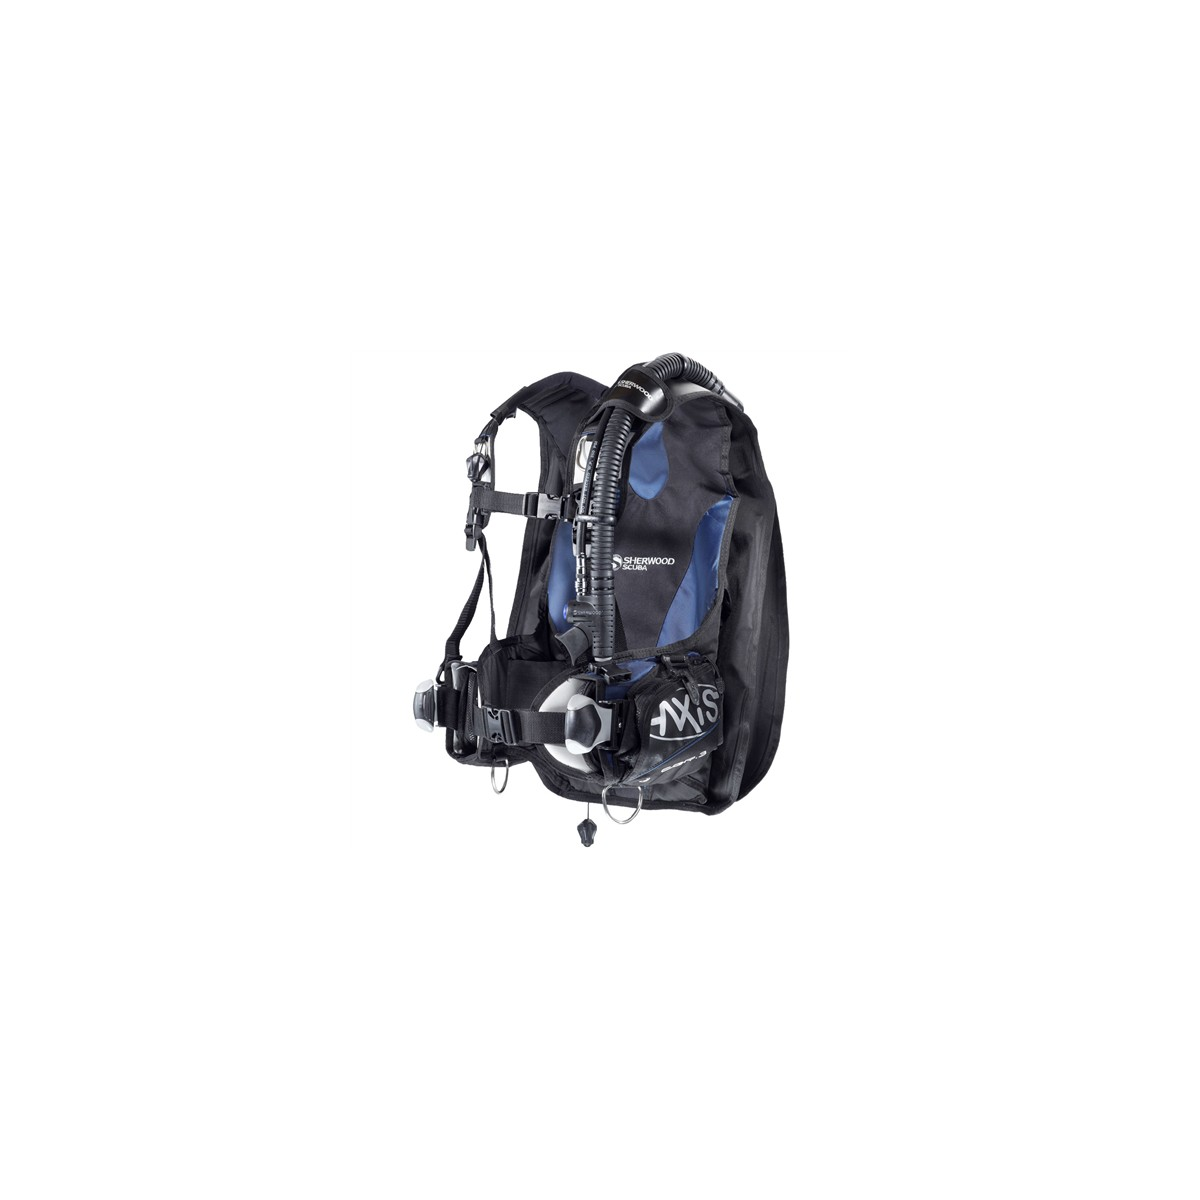 Sherwood Axis Back Inflation BCD